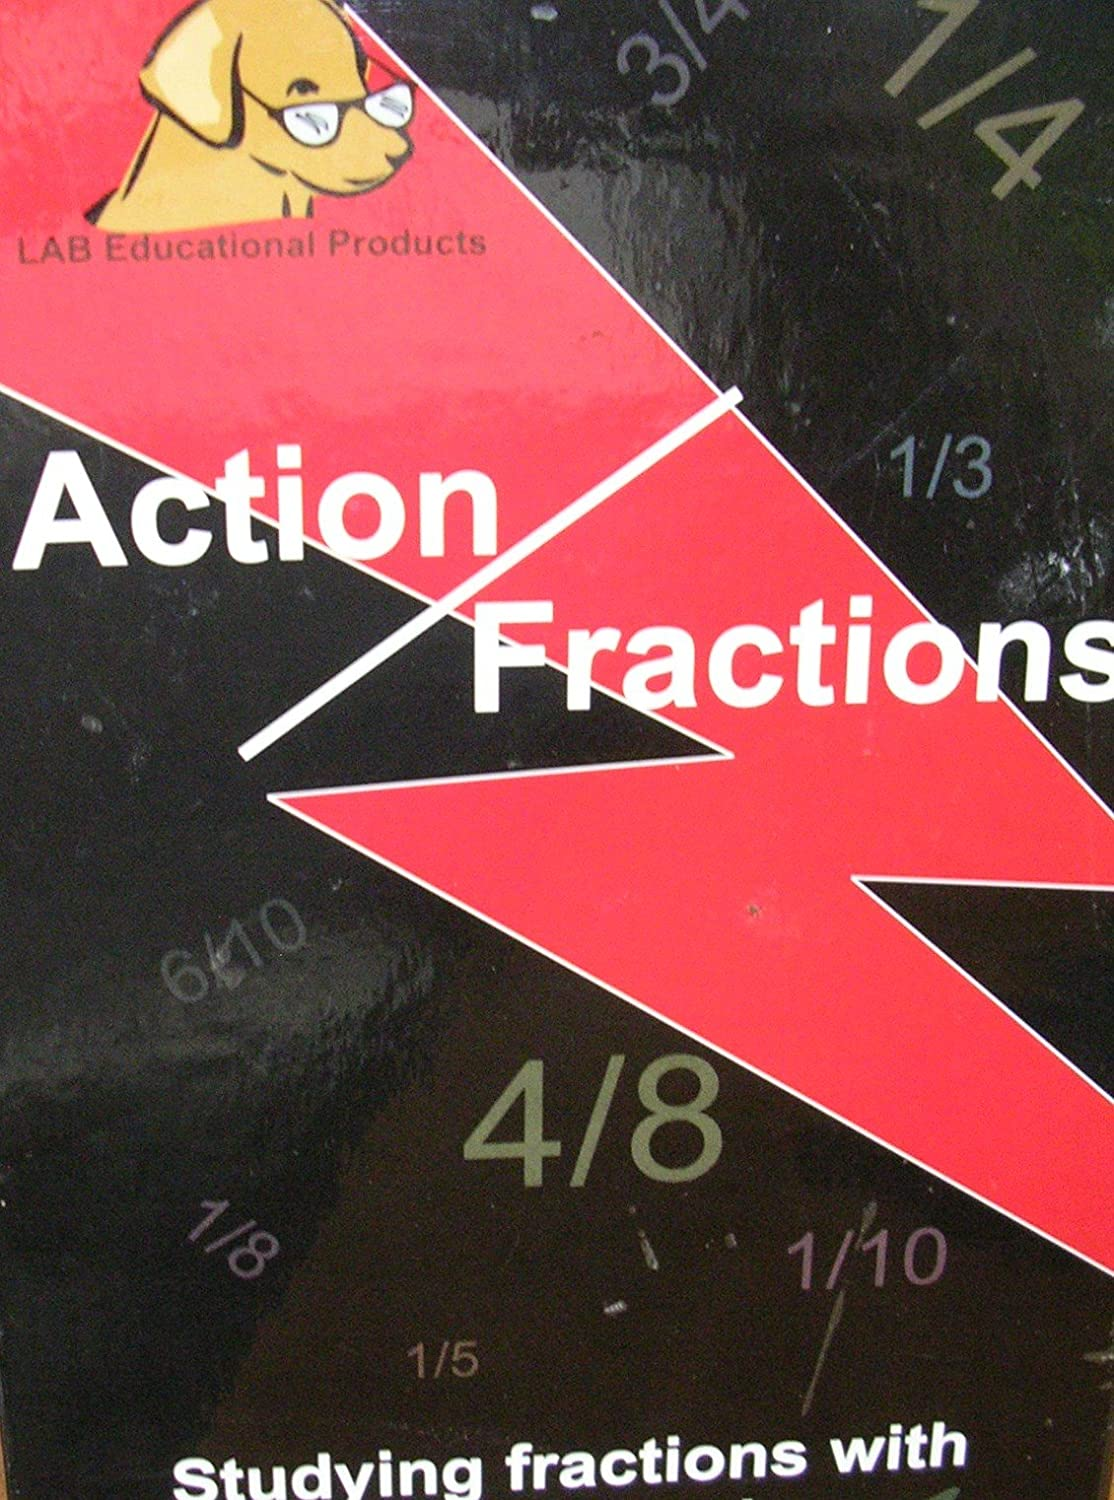 Action/Fractions (Studying fractions with hands on experience) Grades 3 - 8